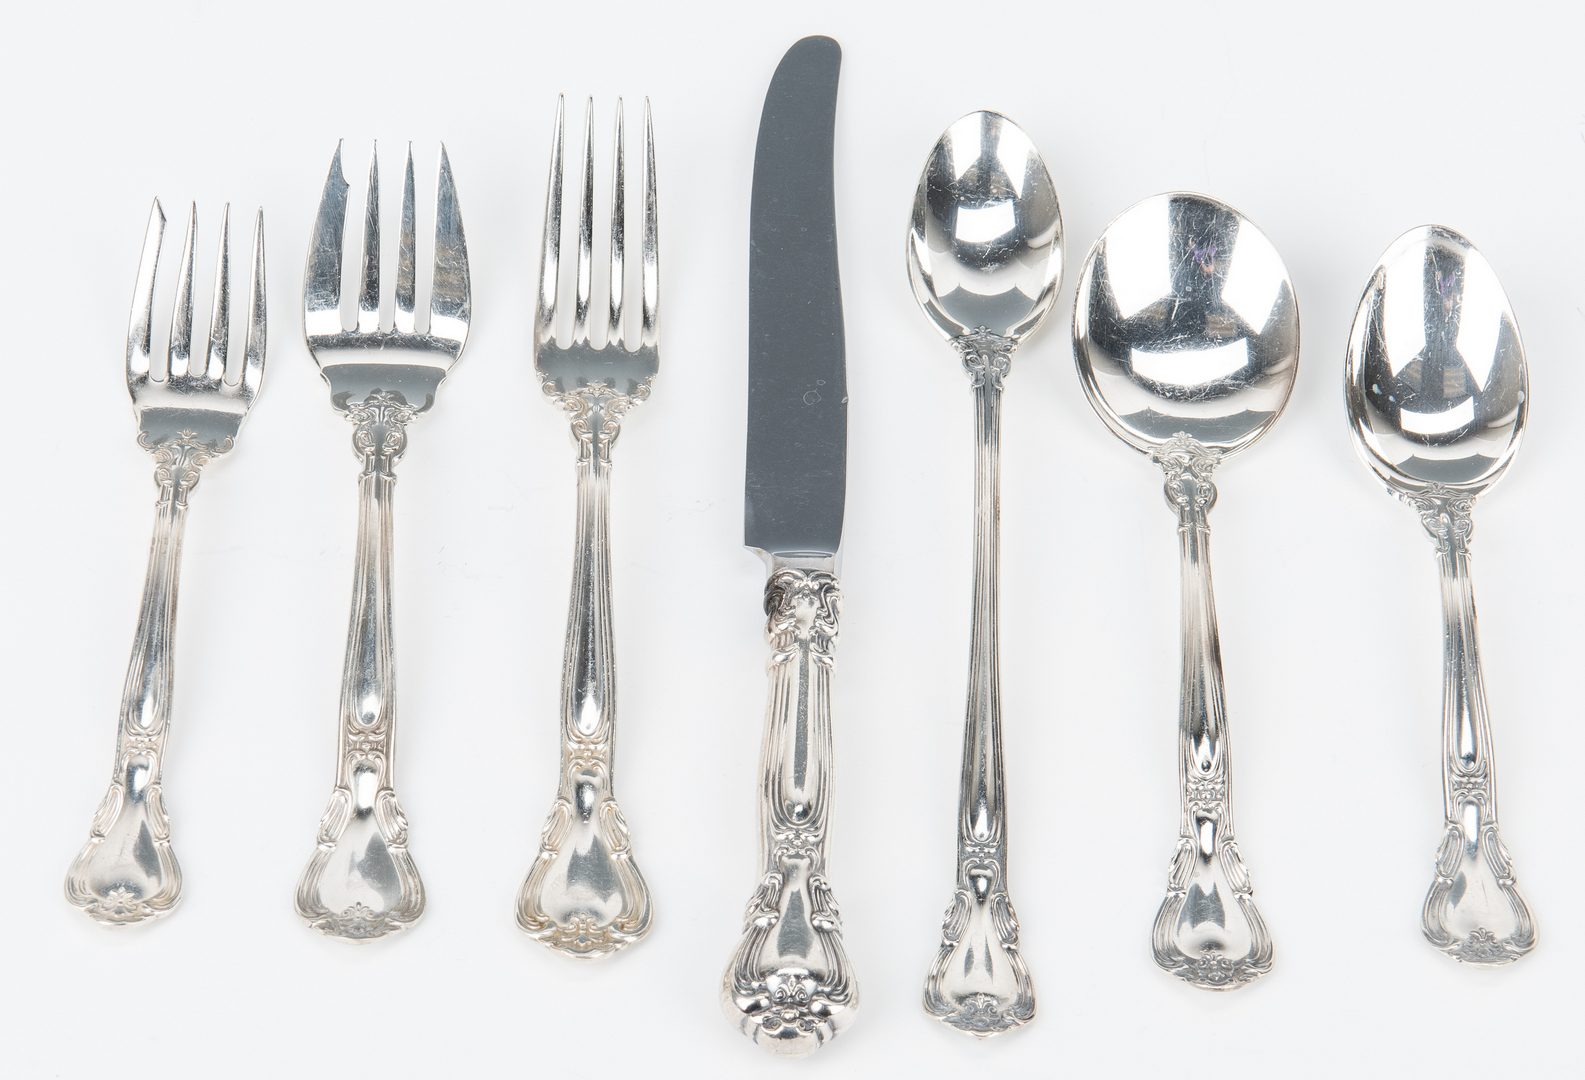 Lot 56: Gorham Chantilly Sterling Flatware & more, 74 items